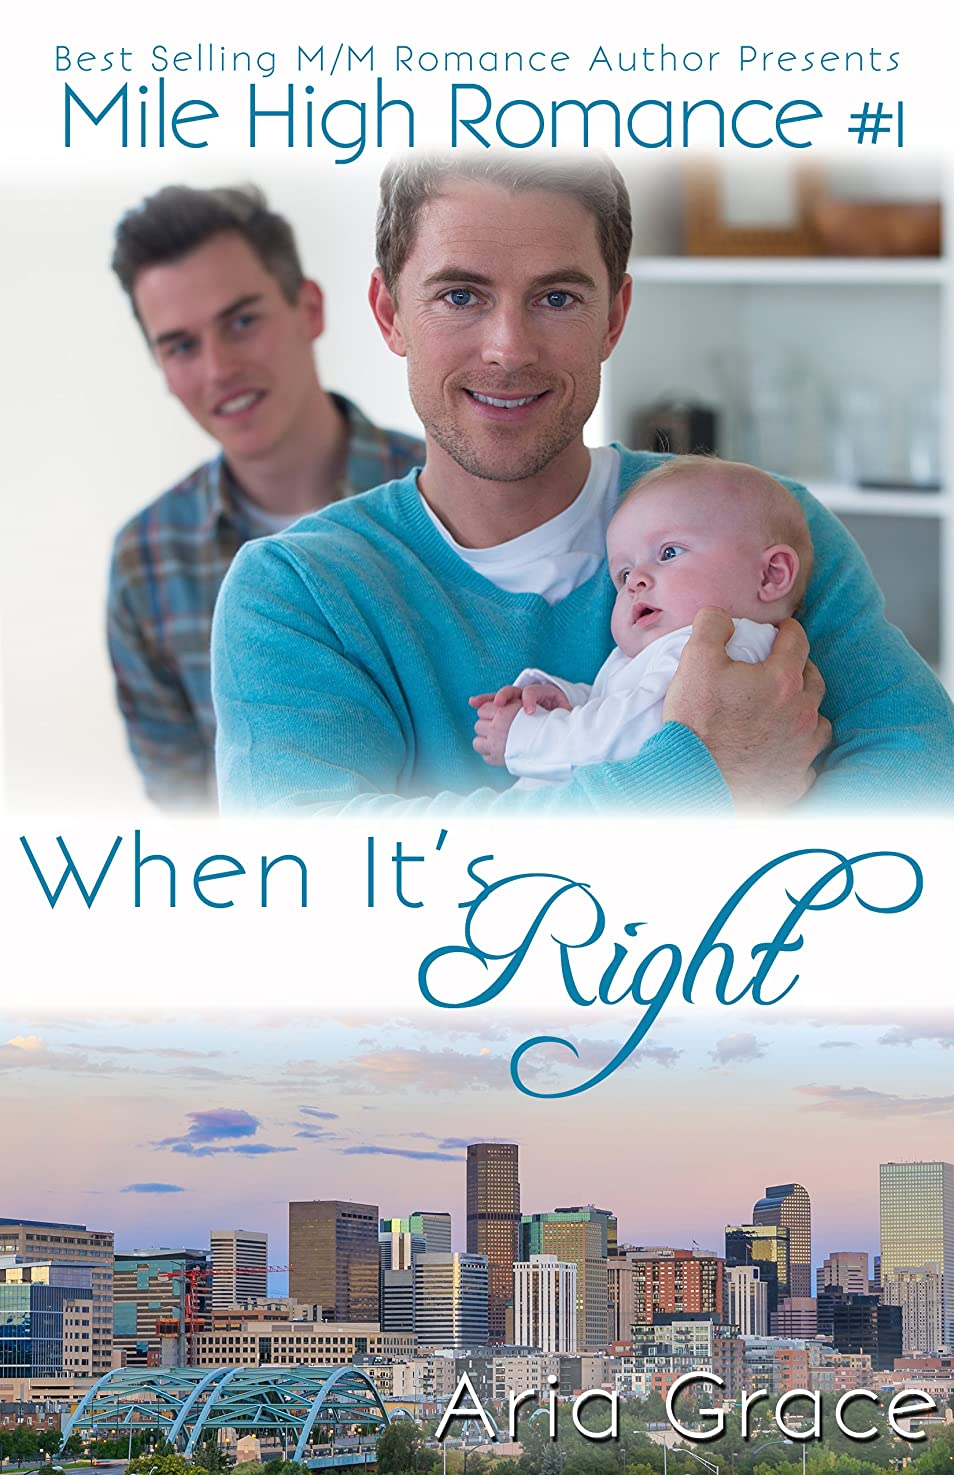 物質寝るクルーWhen It's Right (M/M Romance) (Mile High Romance Book 1) (English Edition)